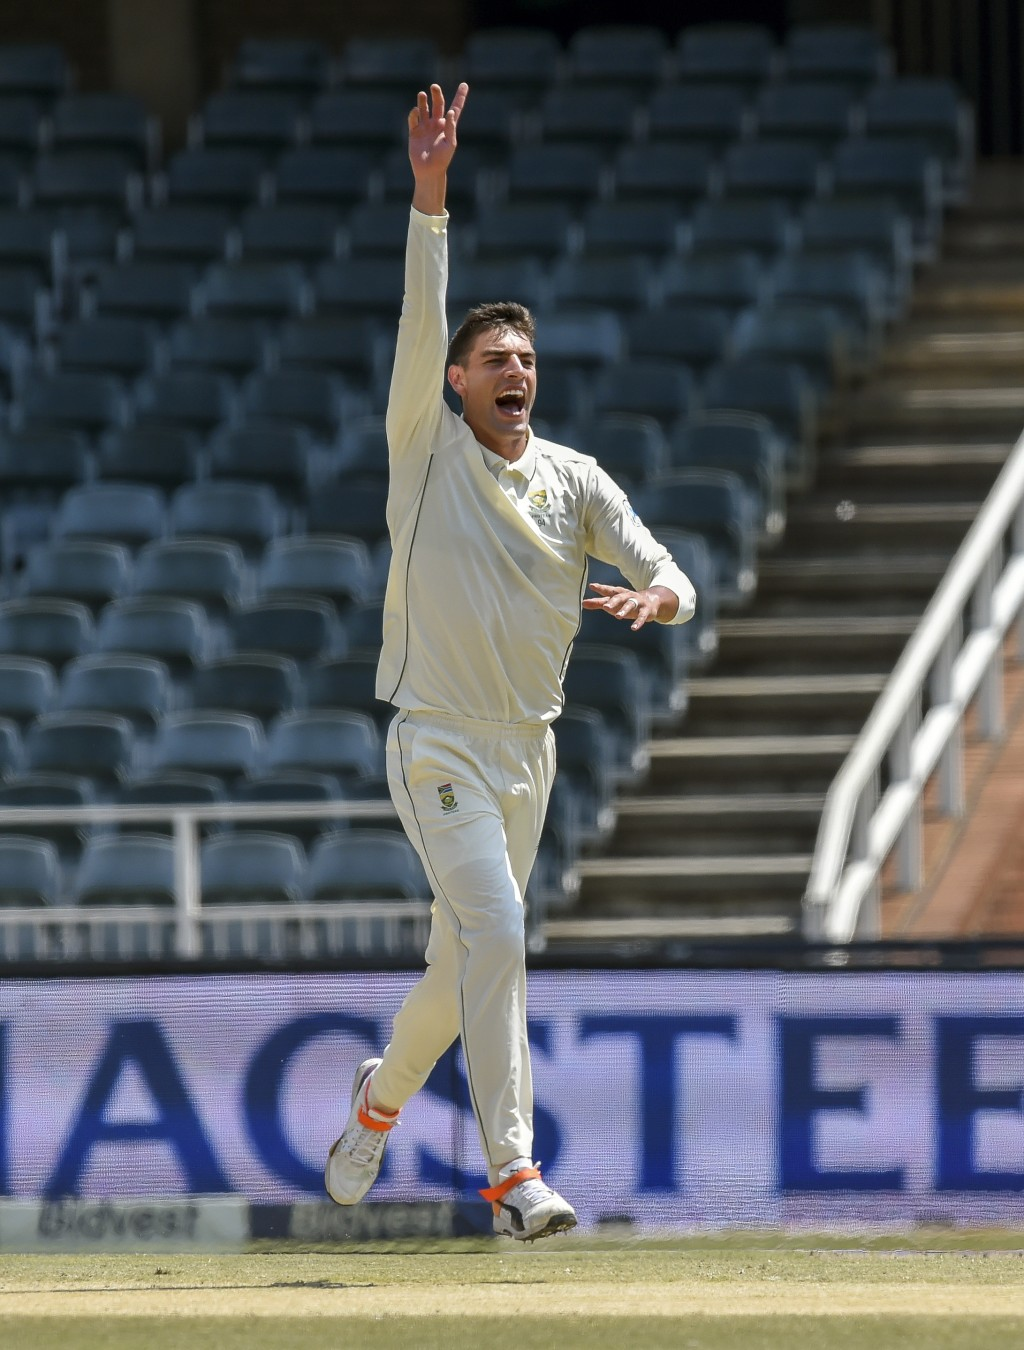 South Africa's bowler Duanne Olivier celebrates bowling Pakistan's batsman Asad Shafiq on day four of the third cricket test match between South Afric